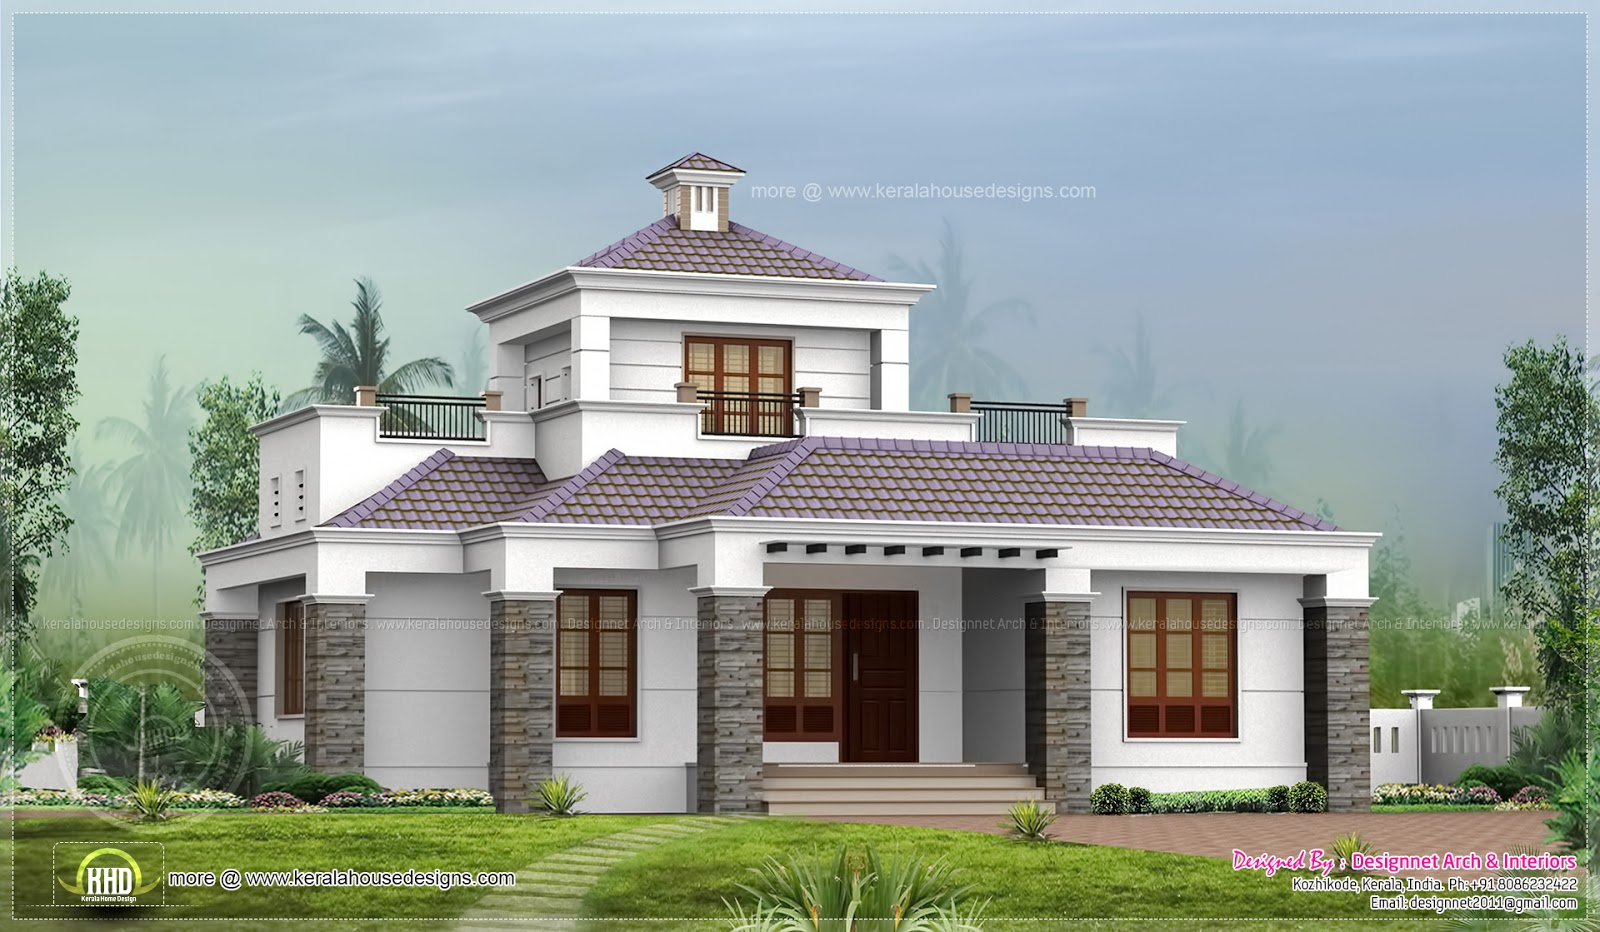 style rambler home plans victorian style house plans rambler home wainsford rambler home plan